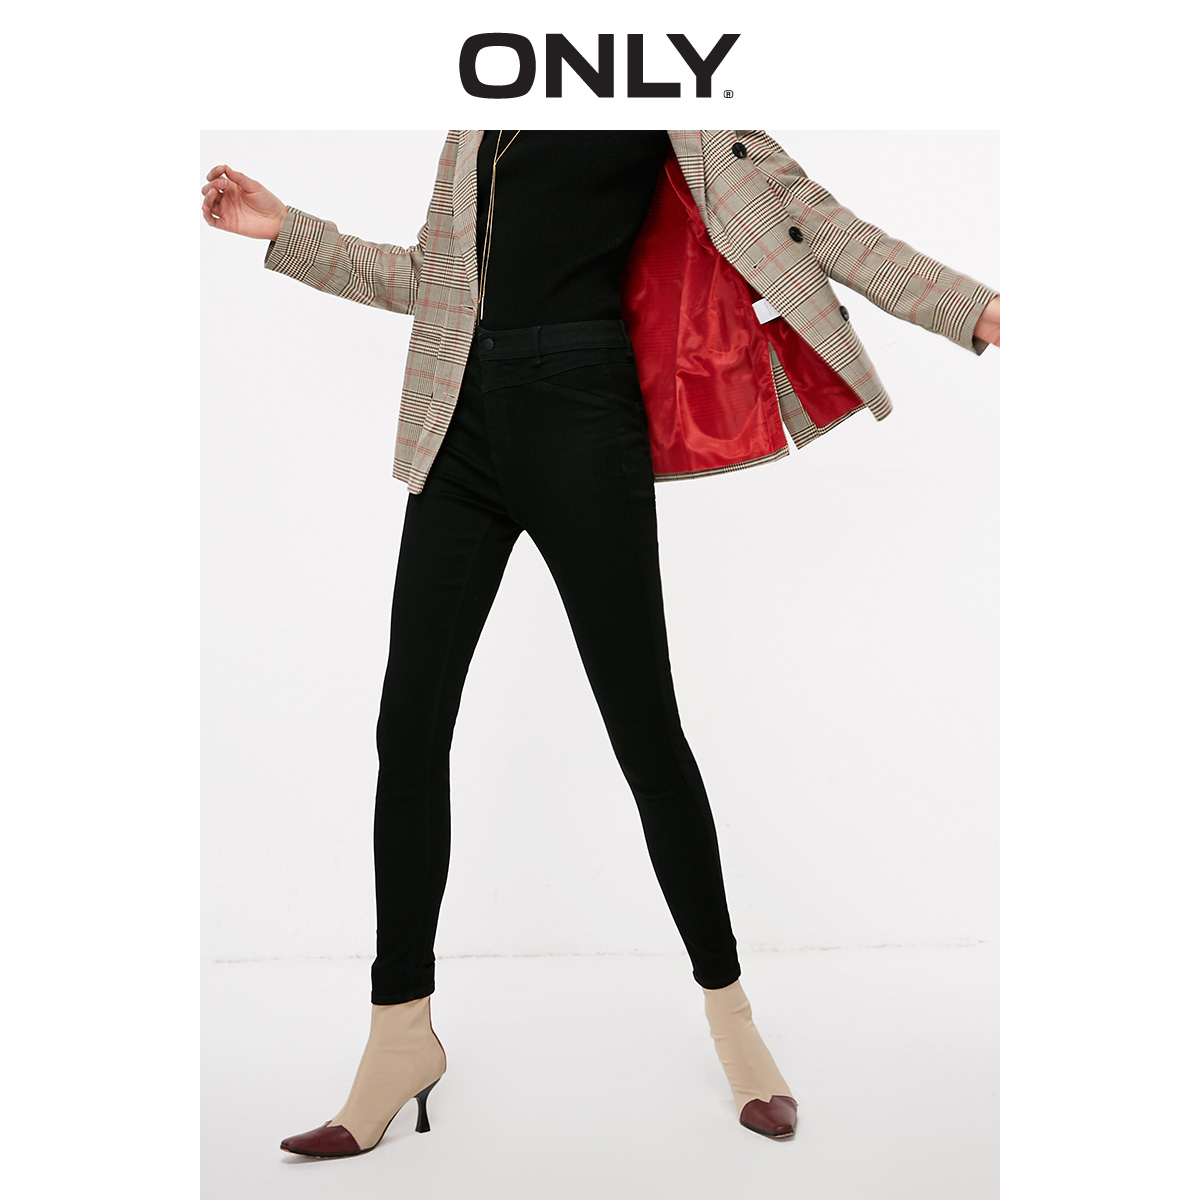 ONLY 2019 Spring Summer New Women's High-rise Stretch Skinny   Jeans   |119163501